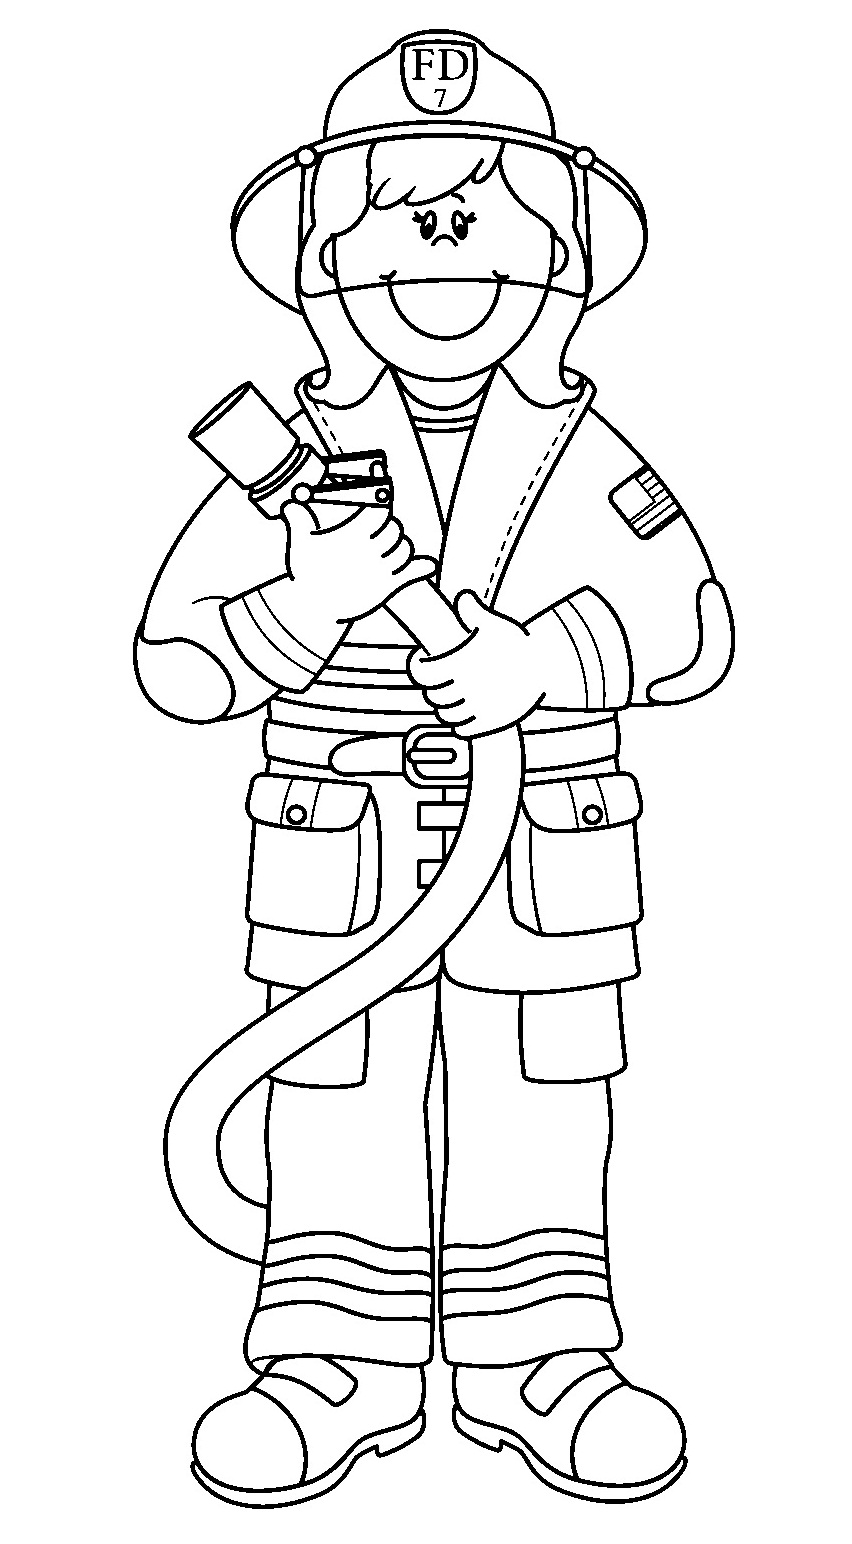 printable community coloring pages firefighter coloring pages to download and print for free pages community printable coloring